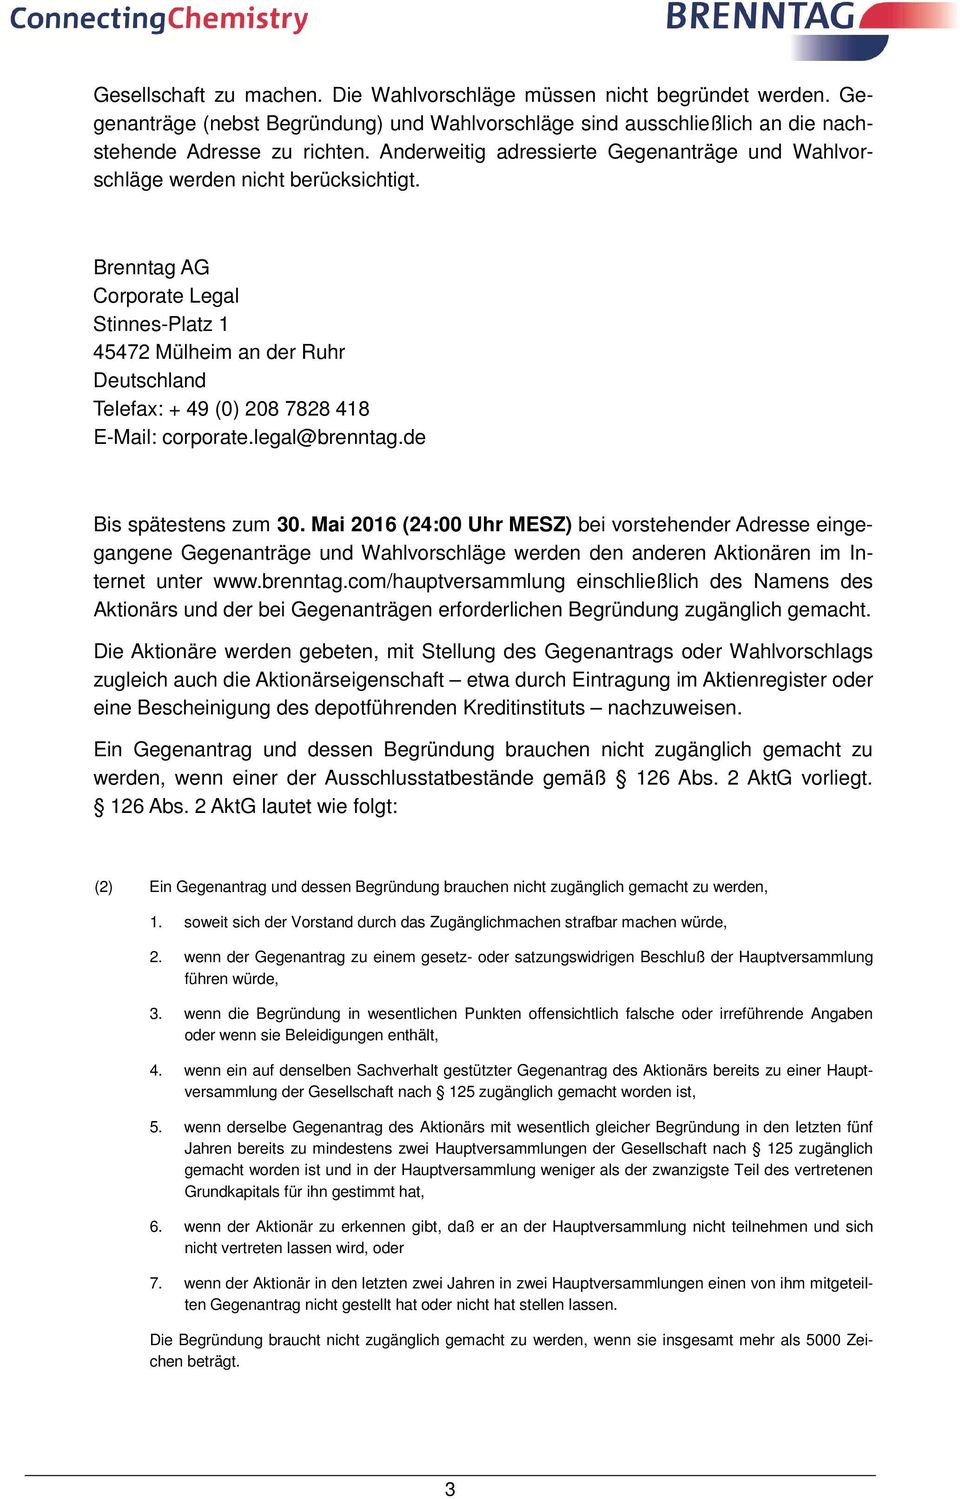 Brenntag AG Corporate Legal Stinnes-Platz 1 45472 Mülheim an der Ruhr Deutschland Telefax: + 49 (0) 208 7828 418 E-Mail: corporate.legal@brenntag.de Bis spätestens zum 30.